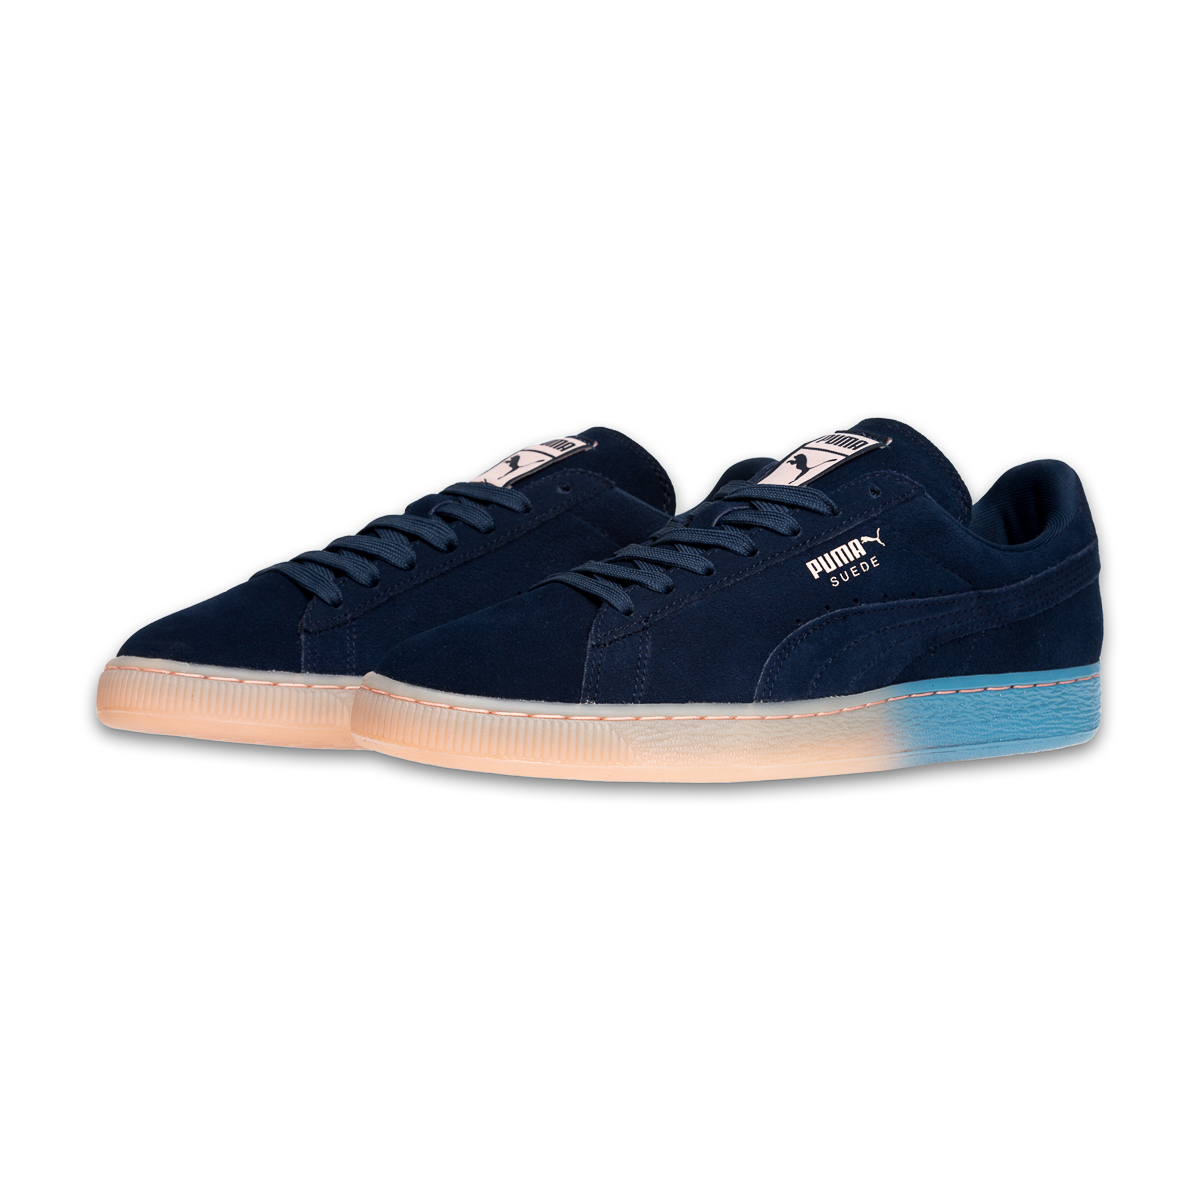 puma pink dolphin shoes for sale